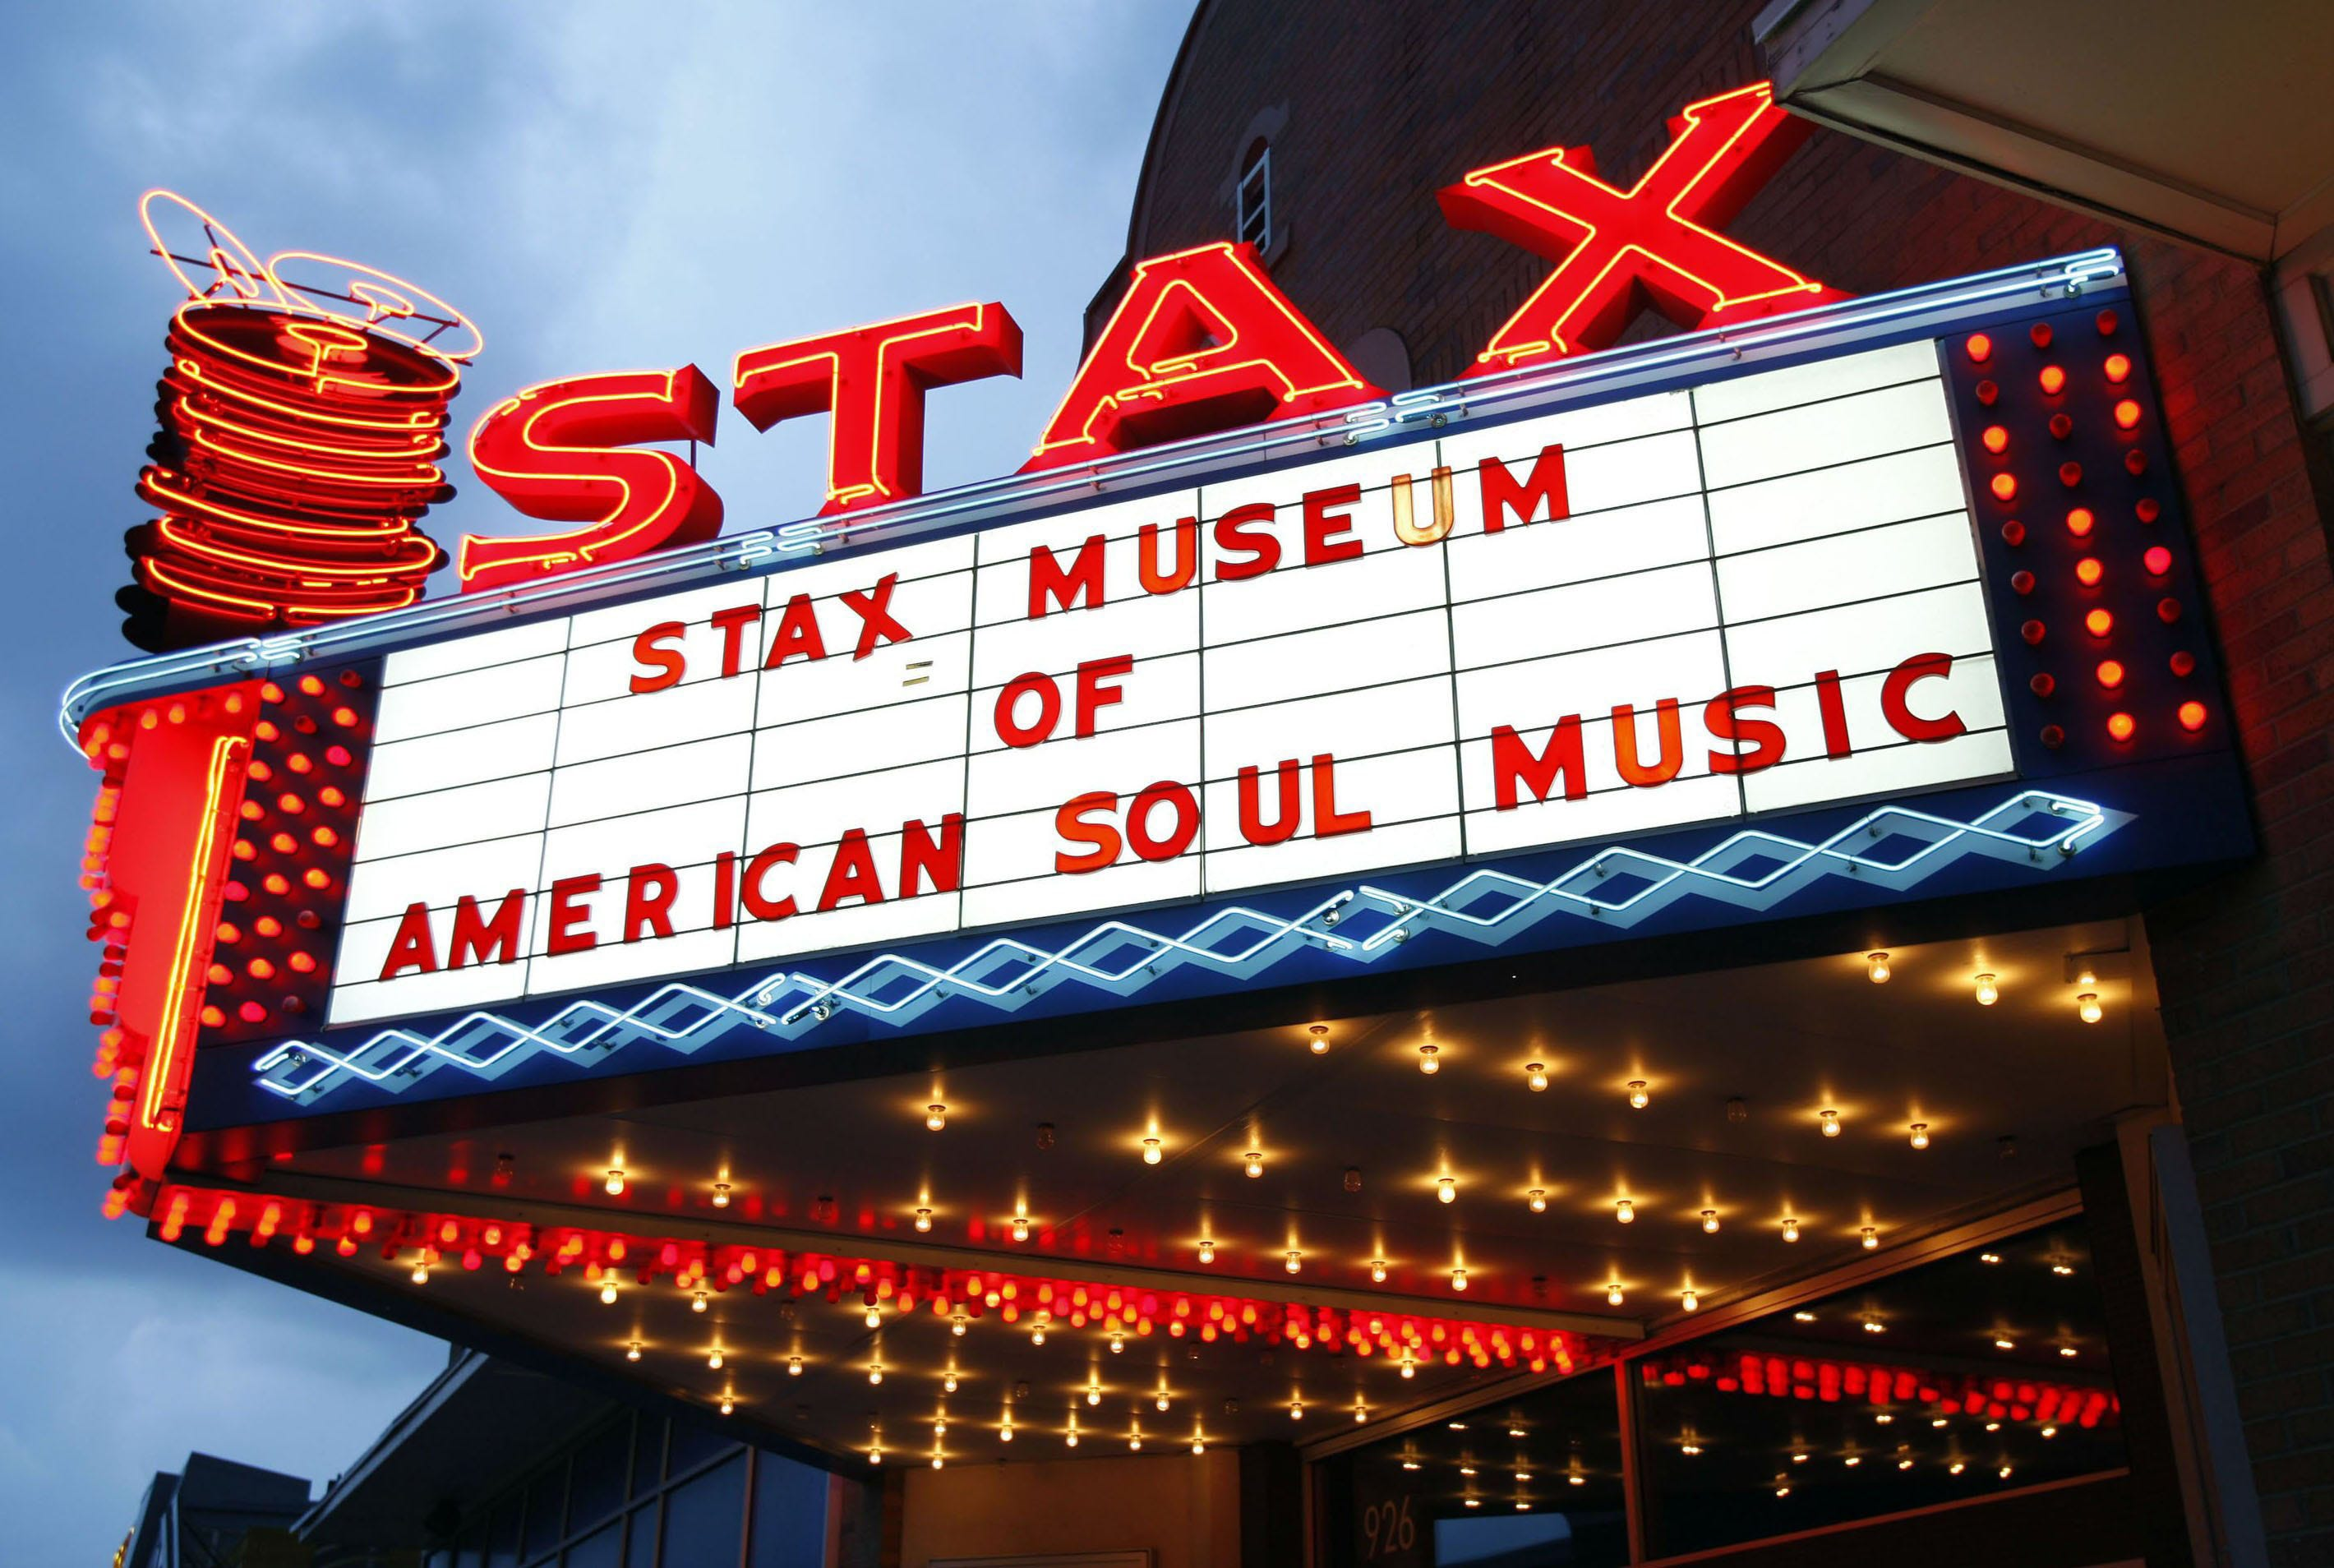 The Stax Museum of American Soul Music in Soulsville